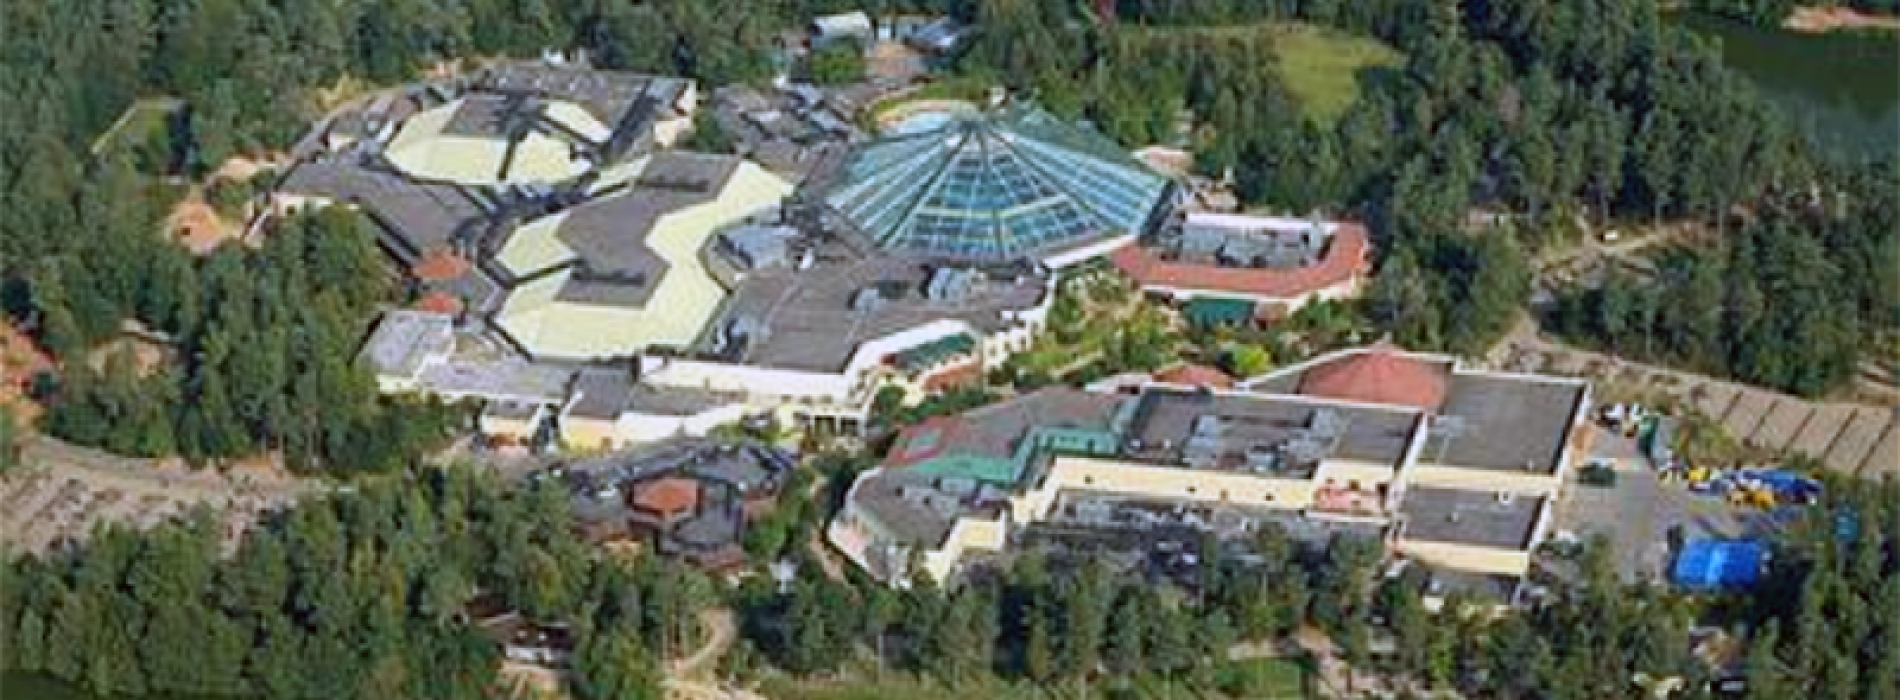 A Facebook post is spreading across the social networking site claiming to offer free holidays for 4 people at Center Parcs. The post claims to come from Mark Sutton, which the post claims in the CEO of Center Parcs.